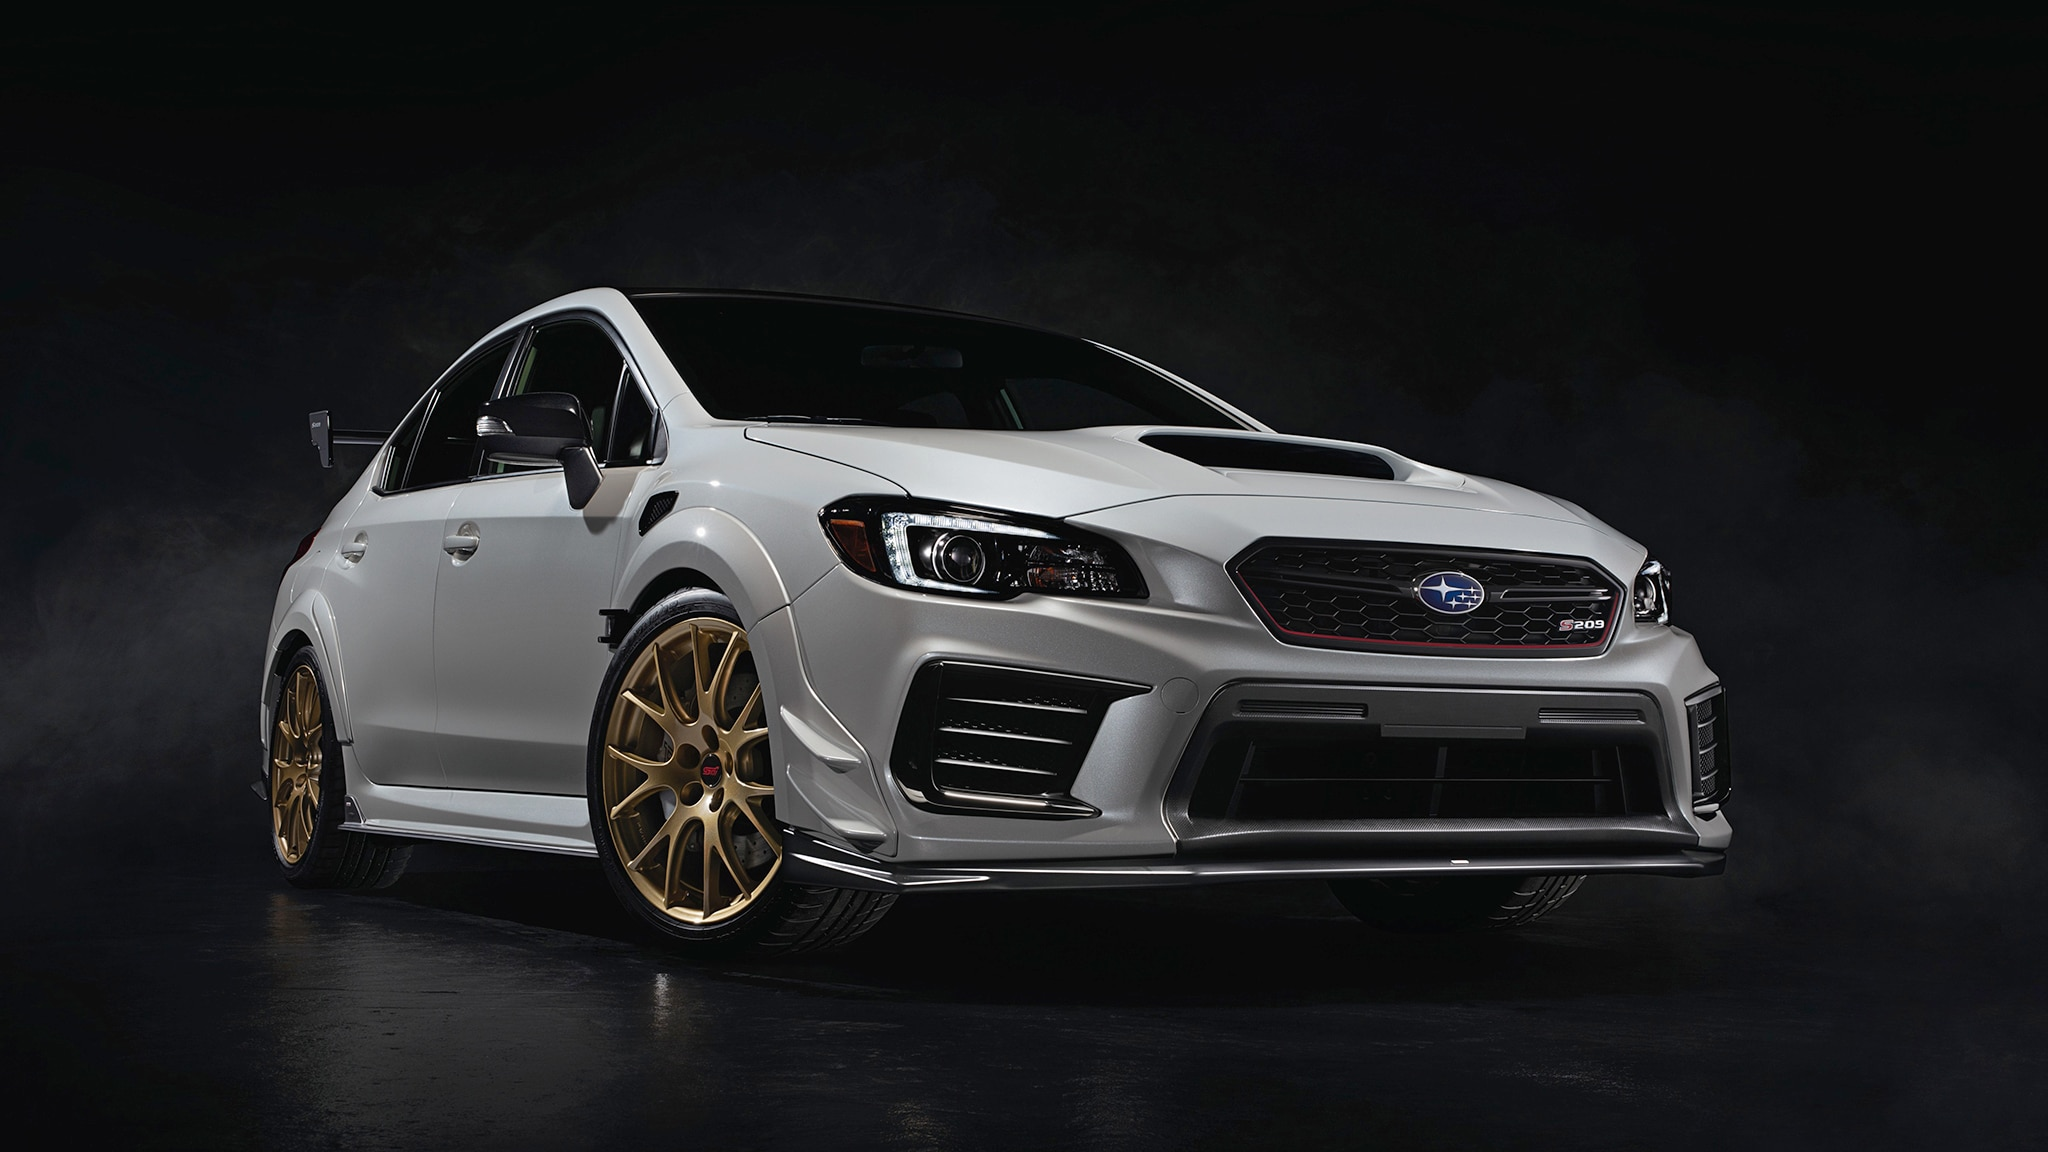 2019 Subaru Wrx Sti S209 341 Hp Exclusive To America Automobile